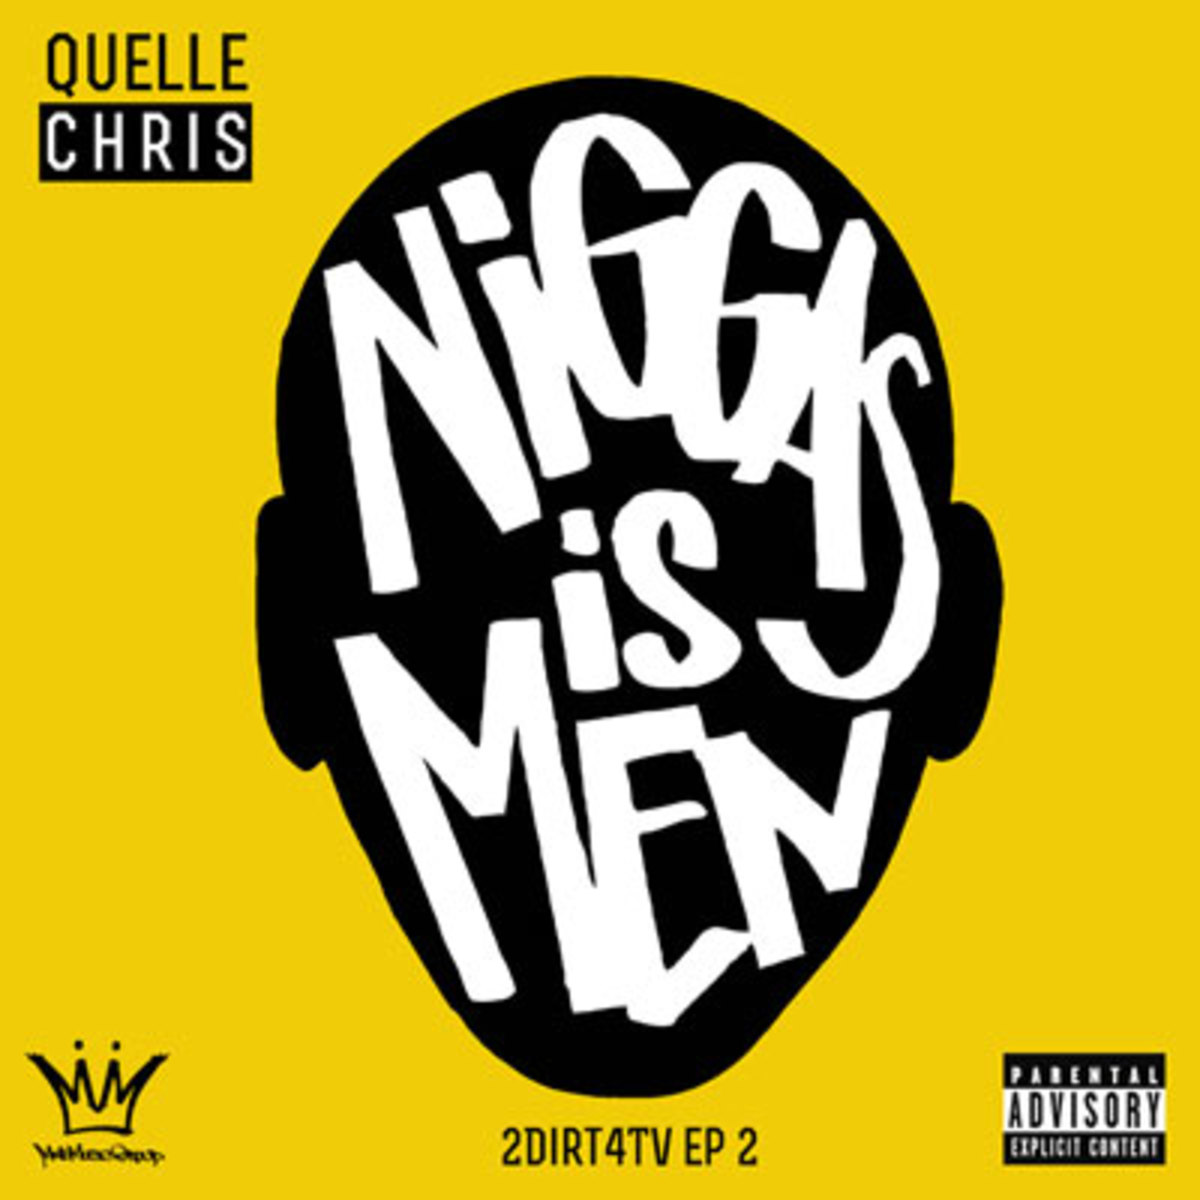 quellechris-ngismen.jpg